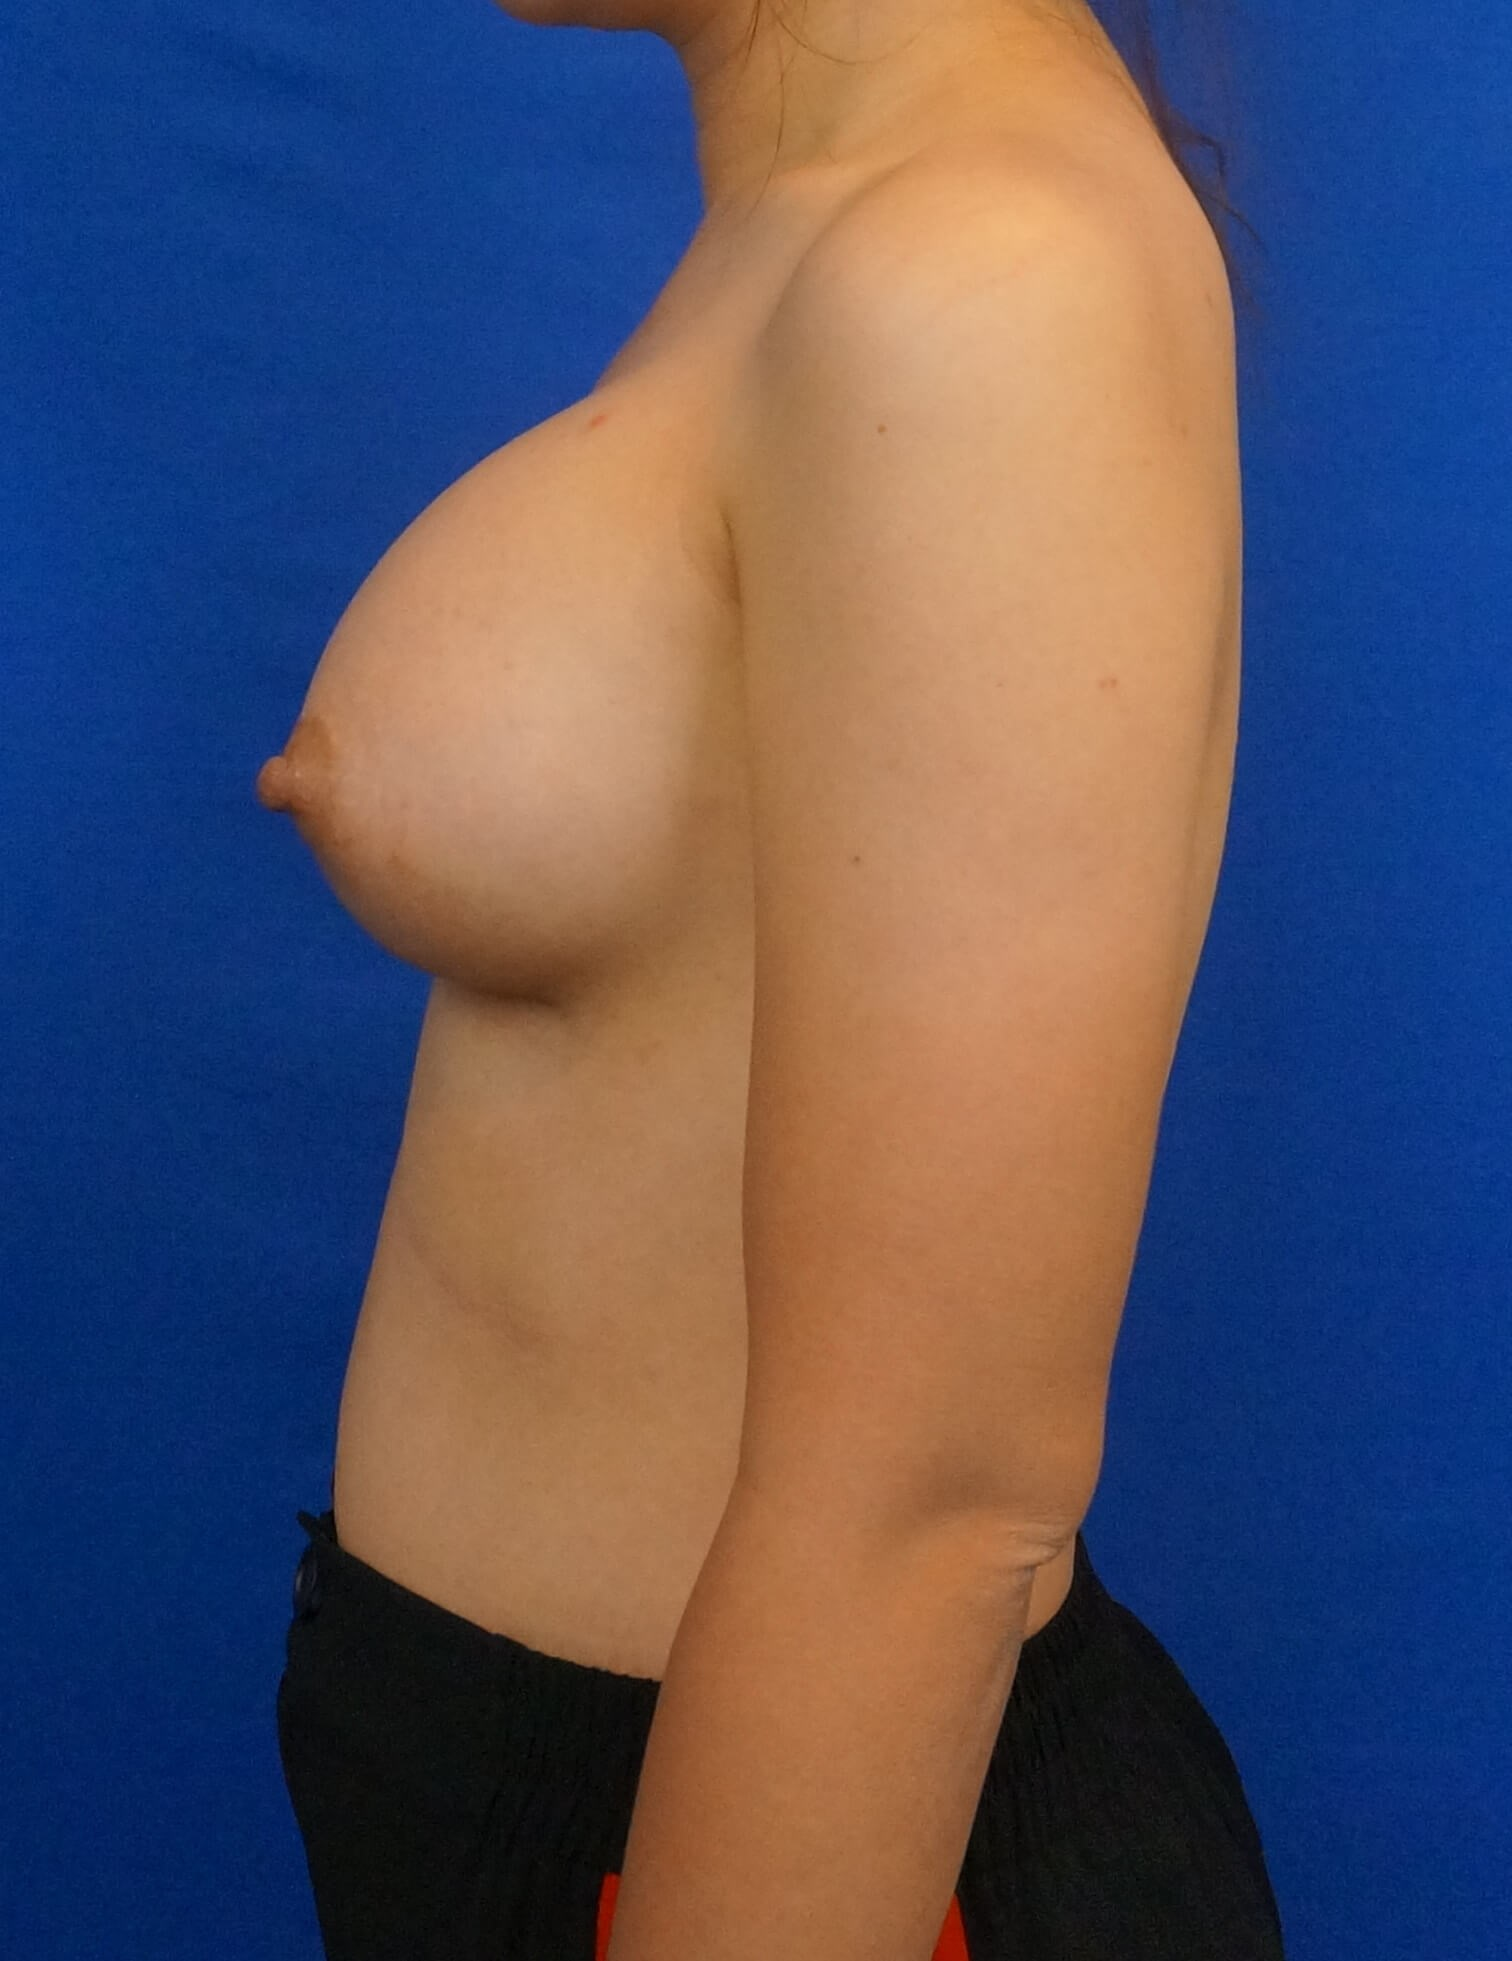 Asian Breast Augmentation After